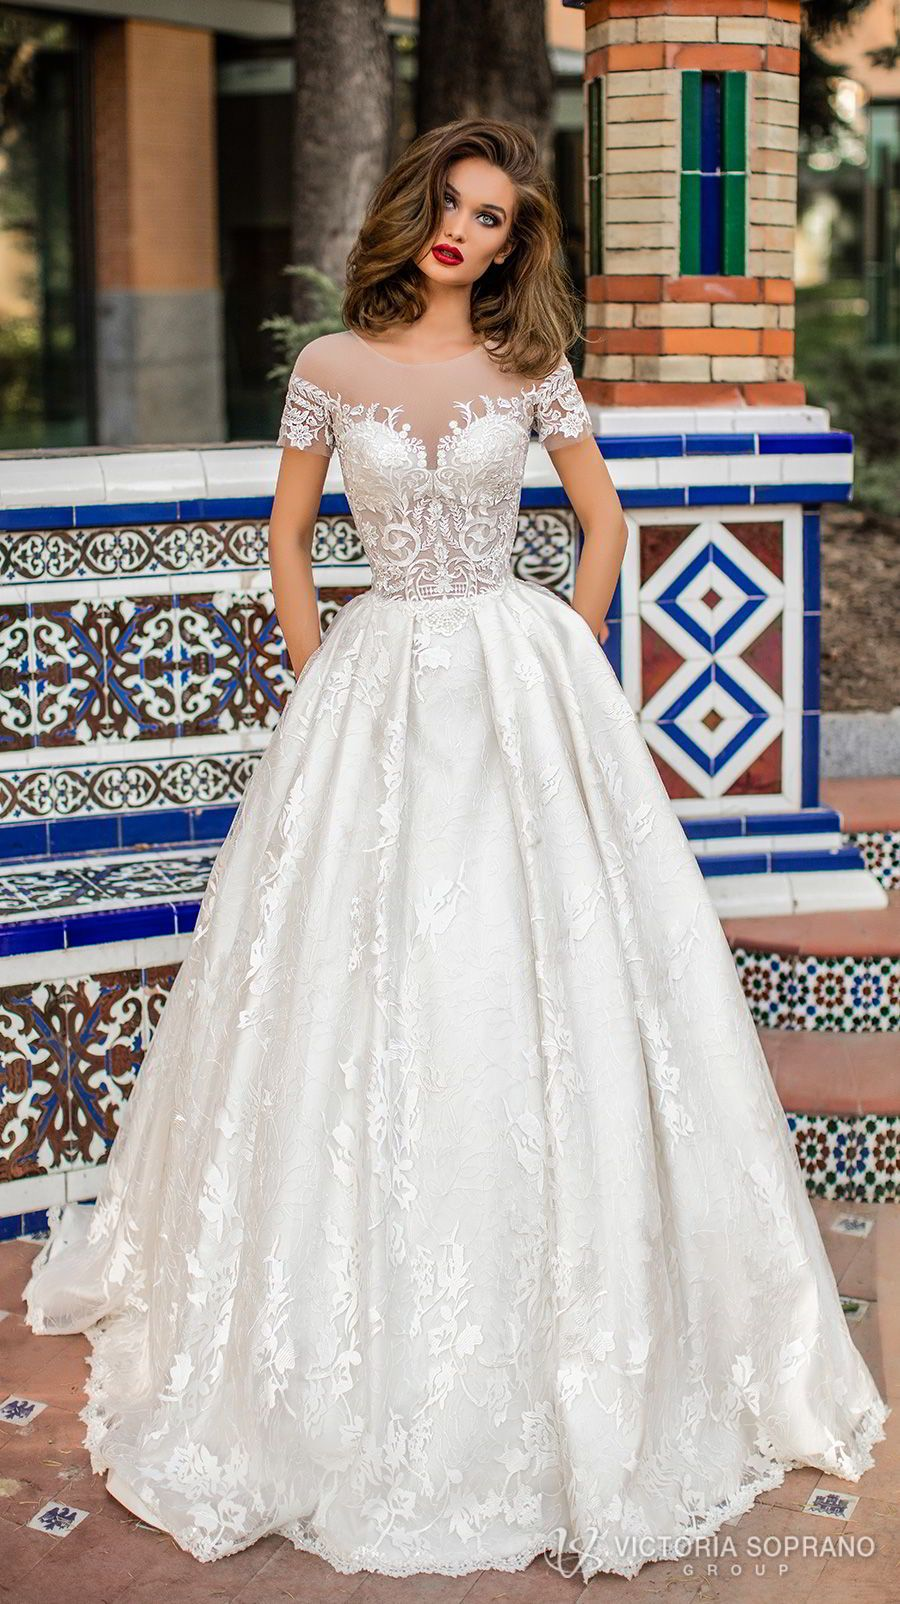 Victoria soprano wedding dresses u ucthe oneud bridal collection